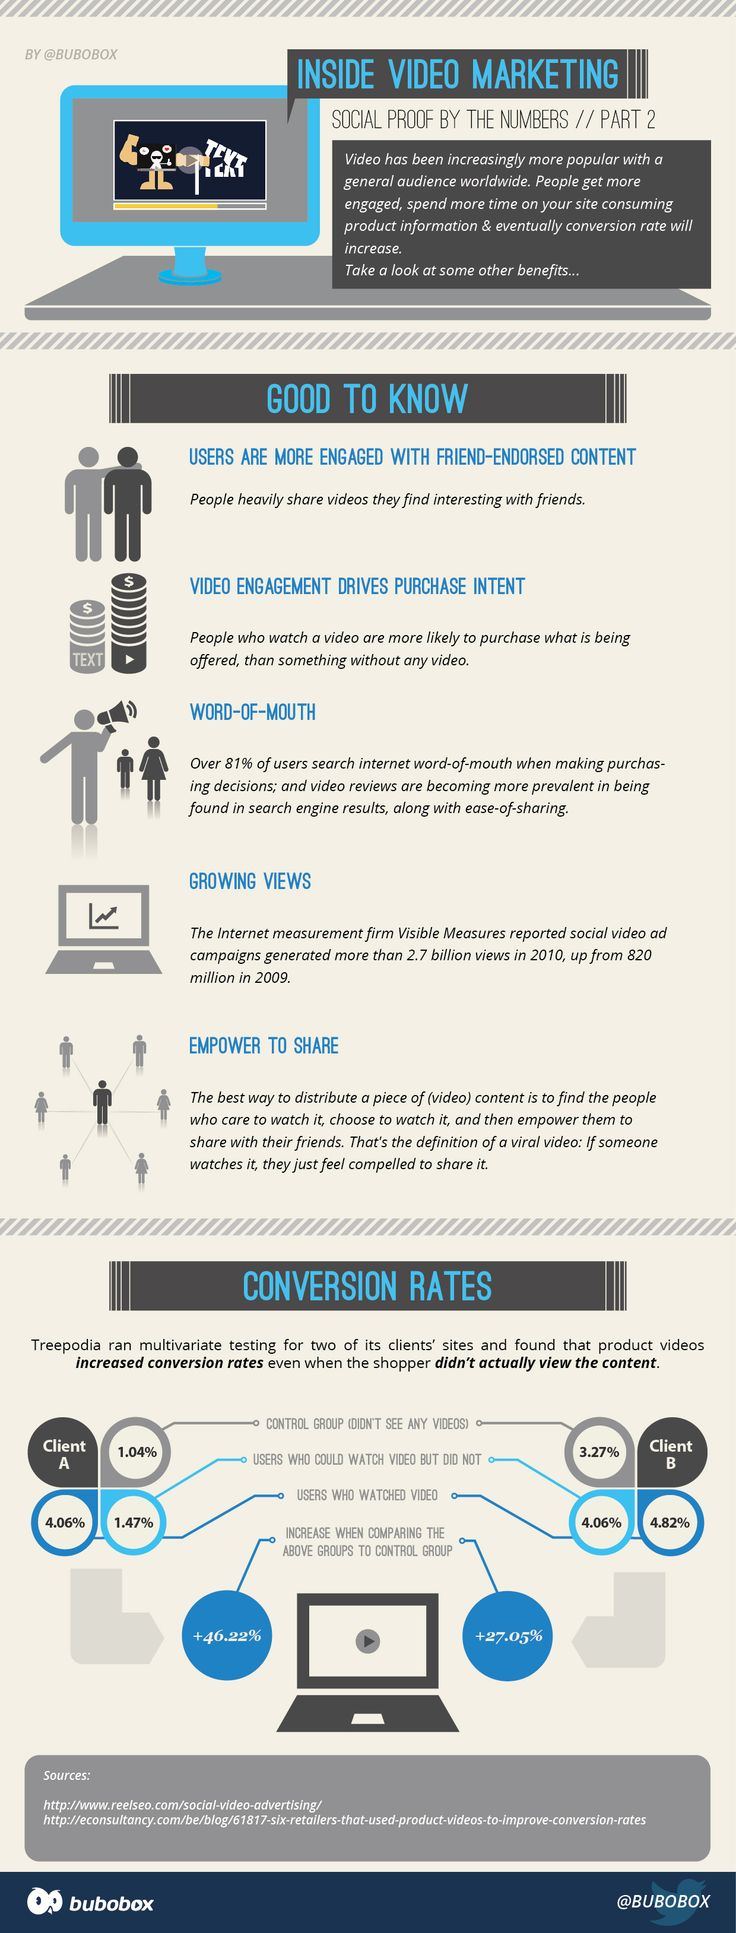 Inside Video Marketing: Social Proof by the Numbers Part 2 from BuboBox  http://www.bubobox.com/blog/inside-online-video-marketing-part-2-infographic